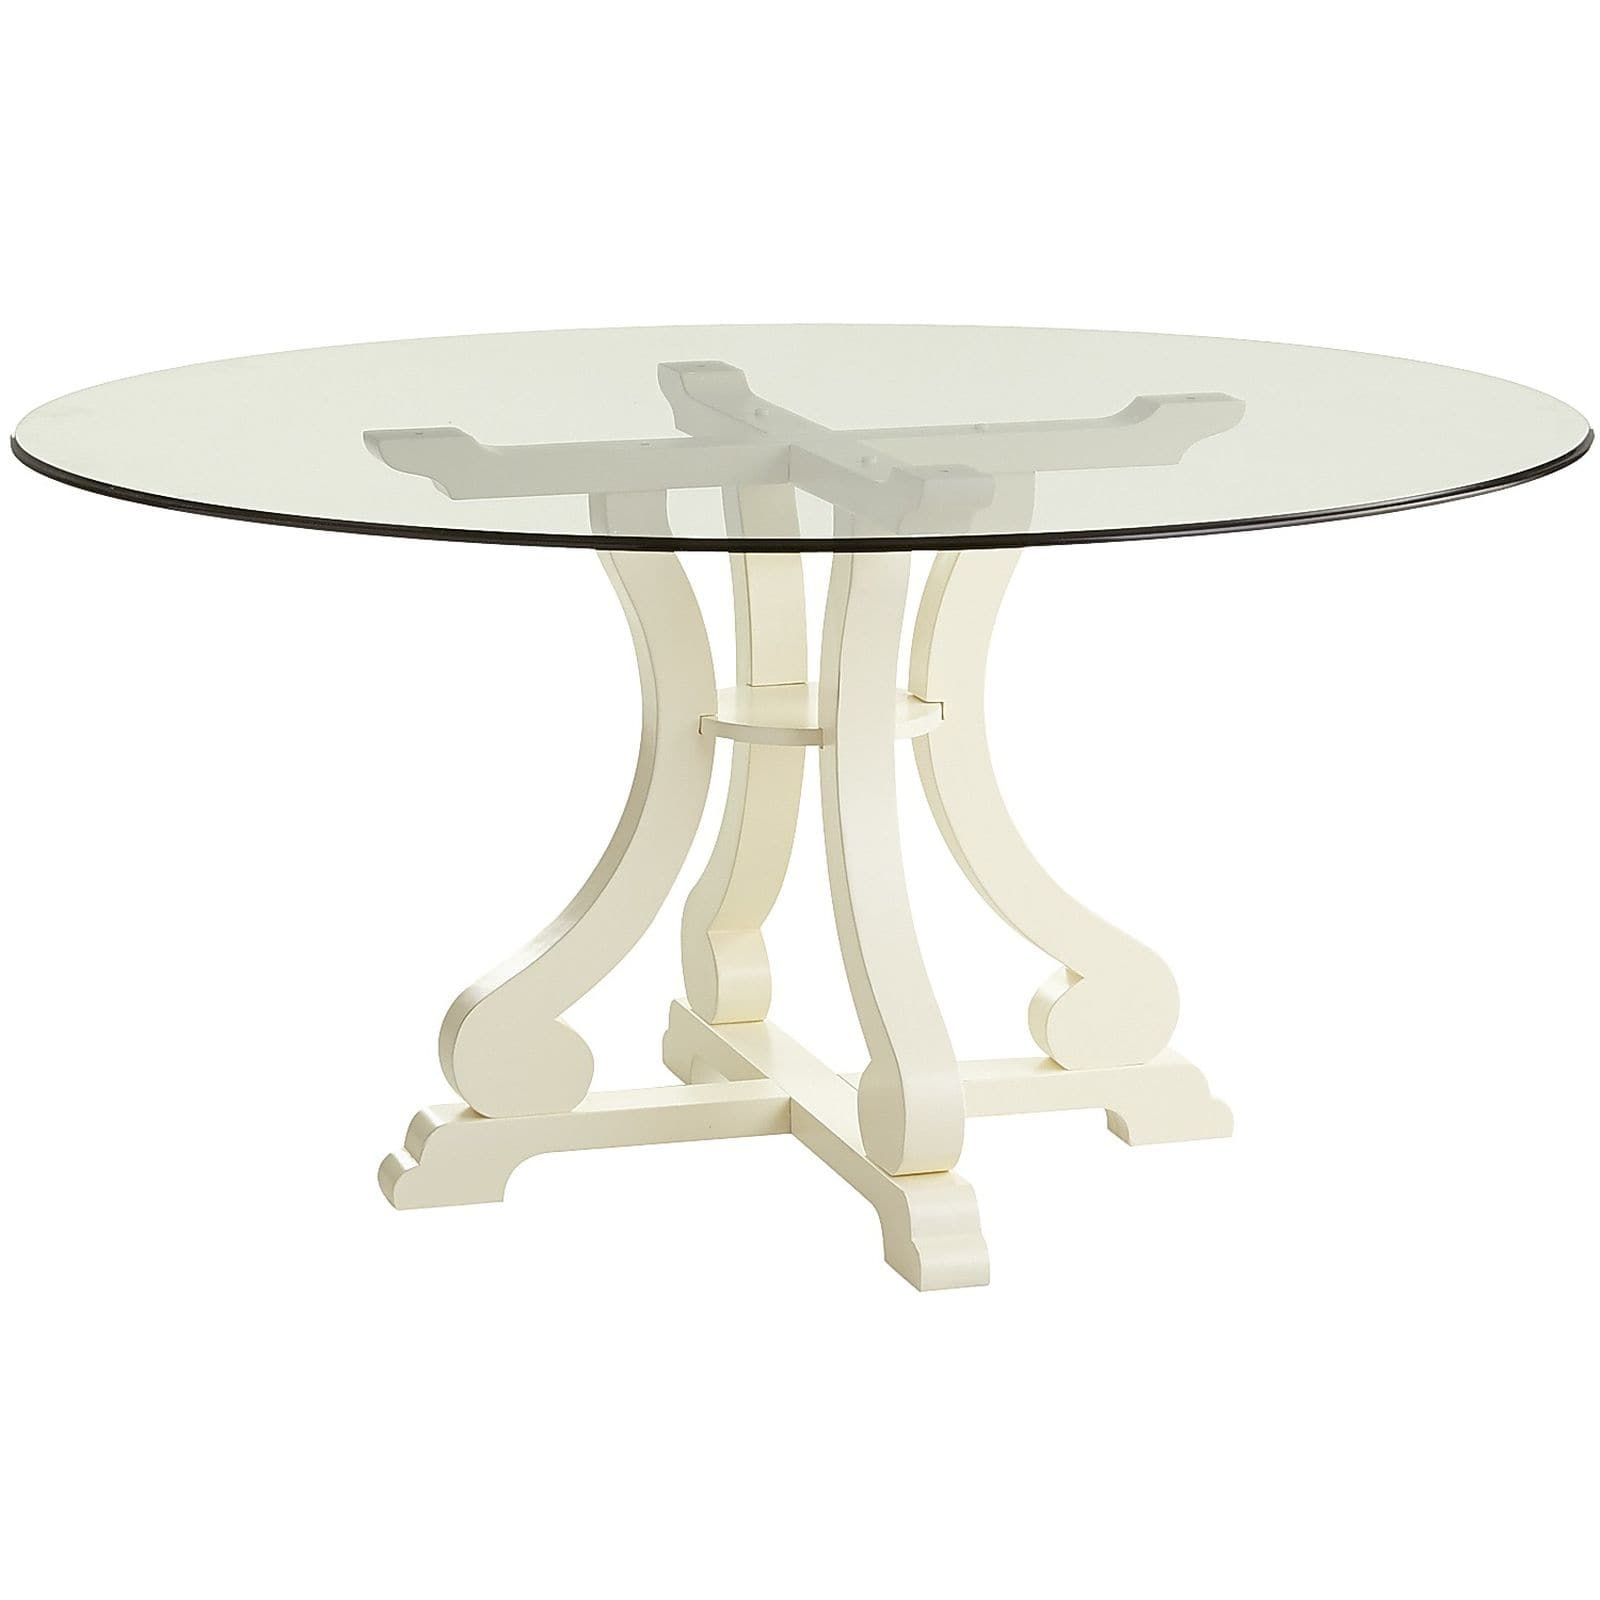 ella antique white round dining table base pier small square accent tables glass wine rack one floor lamps front hall ethan allen ballan wooden bar modern kitchen clocks nautical